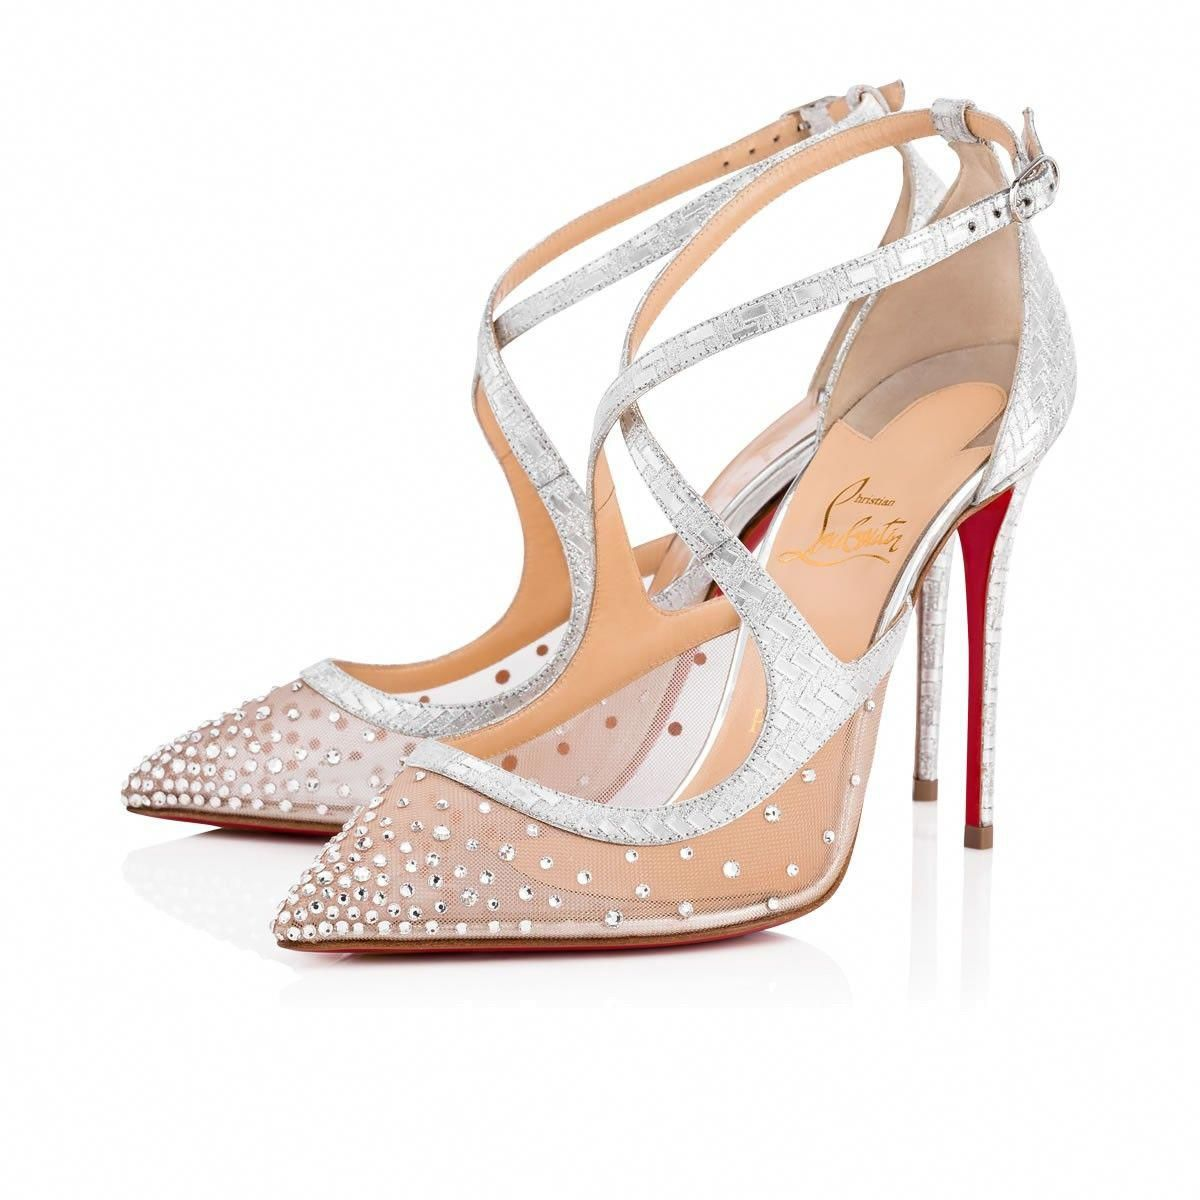 cee1b4876d16 Shoes - Twistissima Strass - Christian Louboutin  glittershoes ...